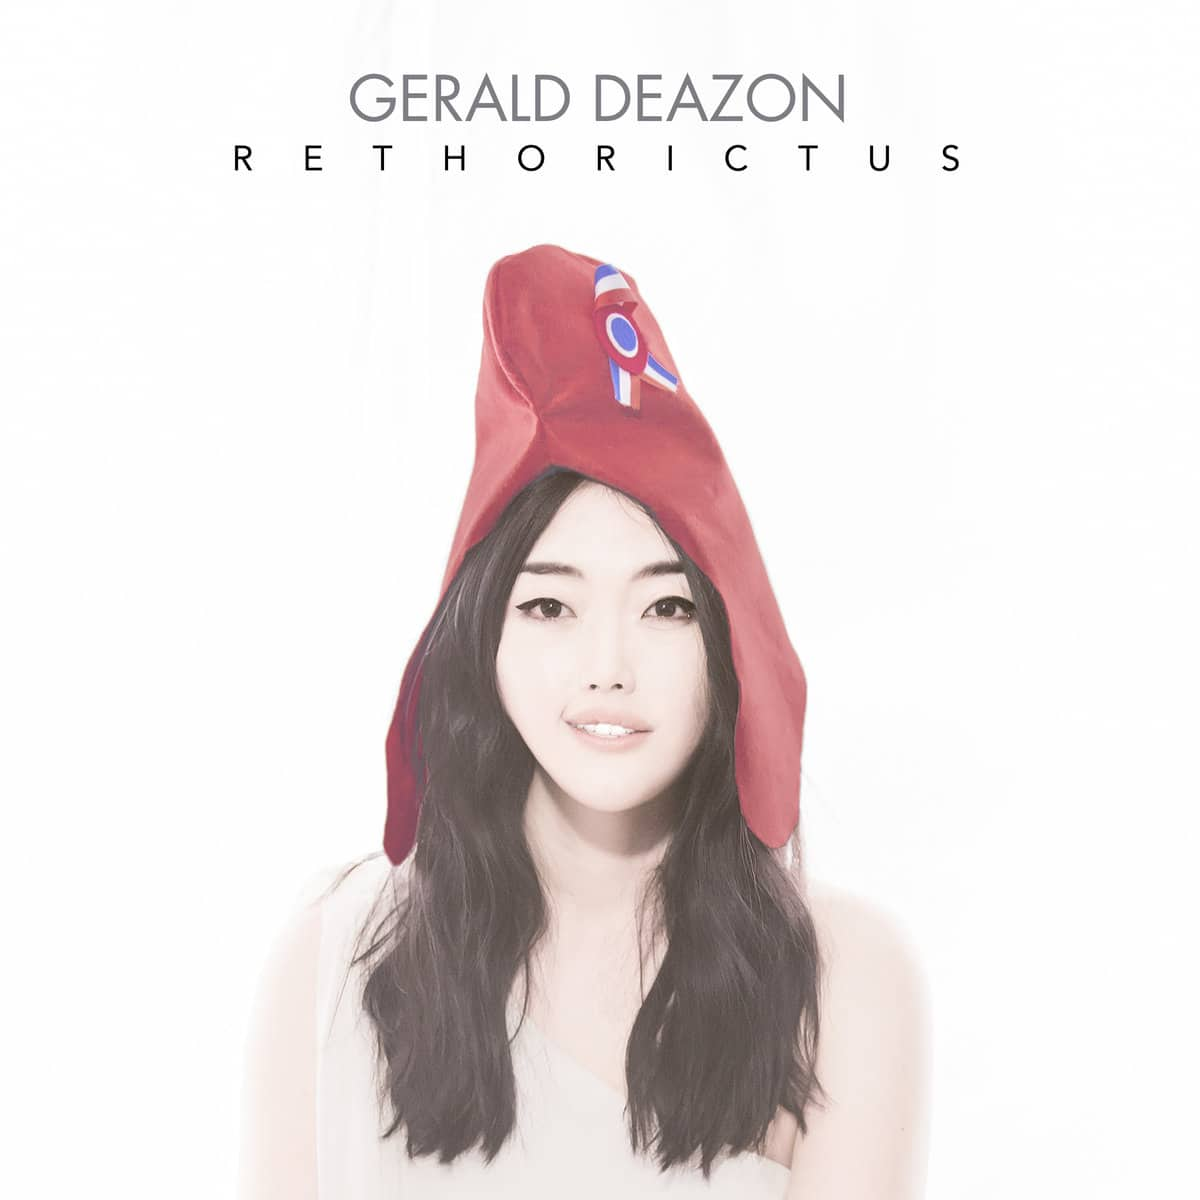 Cover album pochette gerald deazon rethorictus